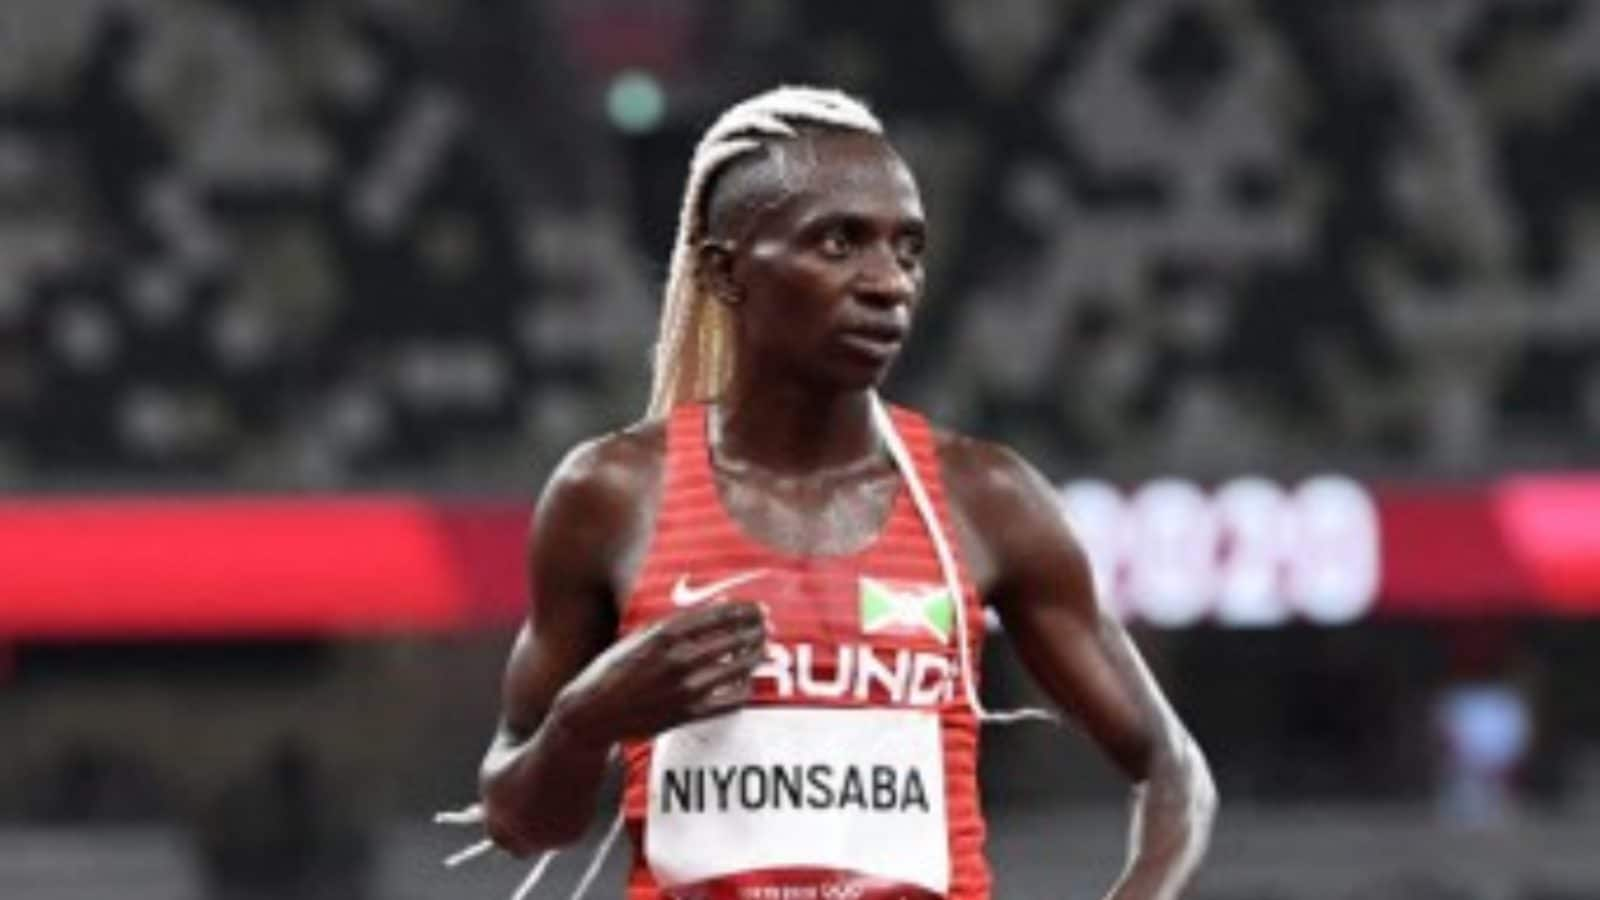 'So Alone': Francine Niyonsaba Criticises Own Team After Olympics Disqualification